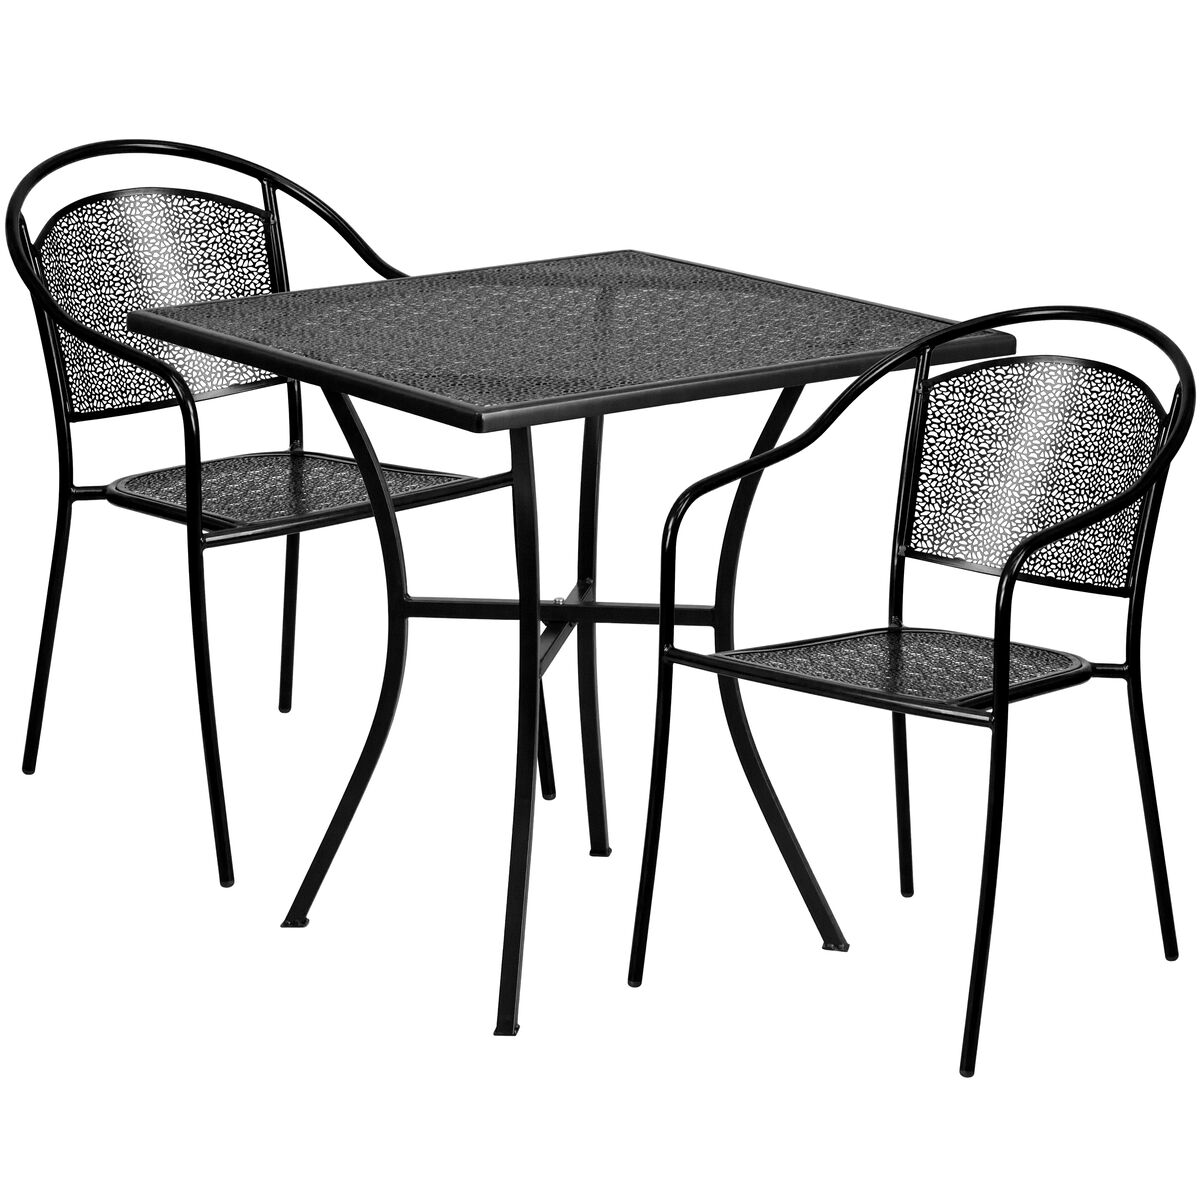 Our 28 Square Black Indoor Outdoor Steel Patio Table Set With 2 Round